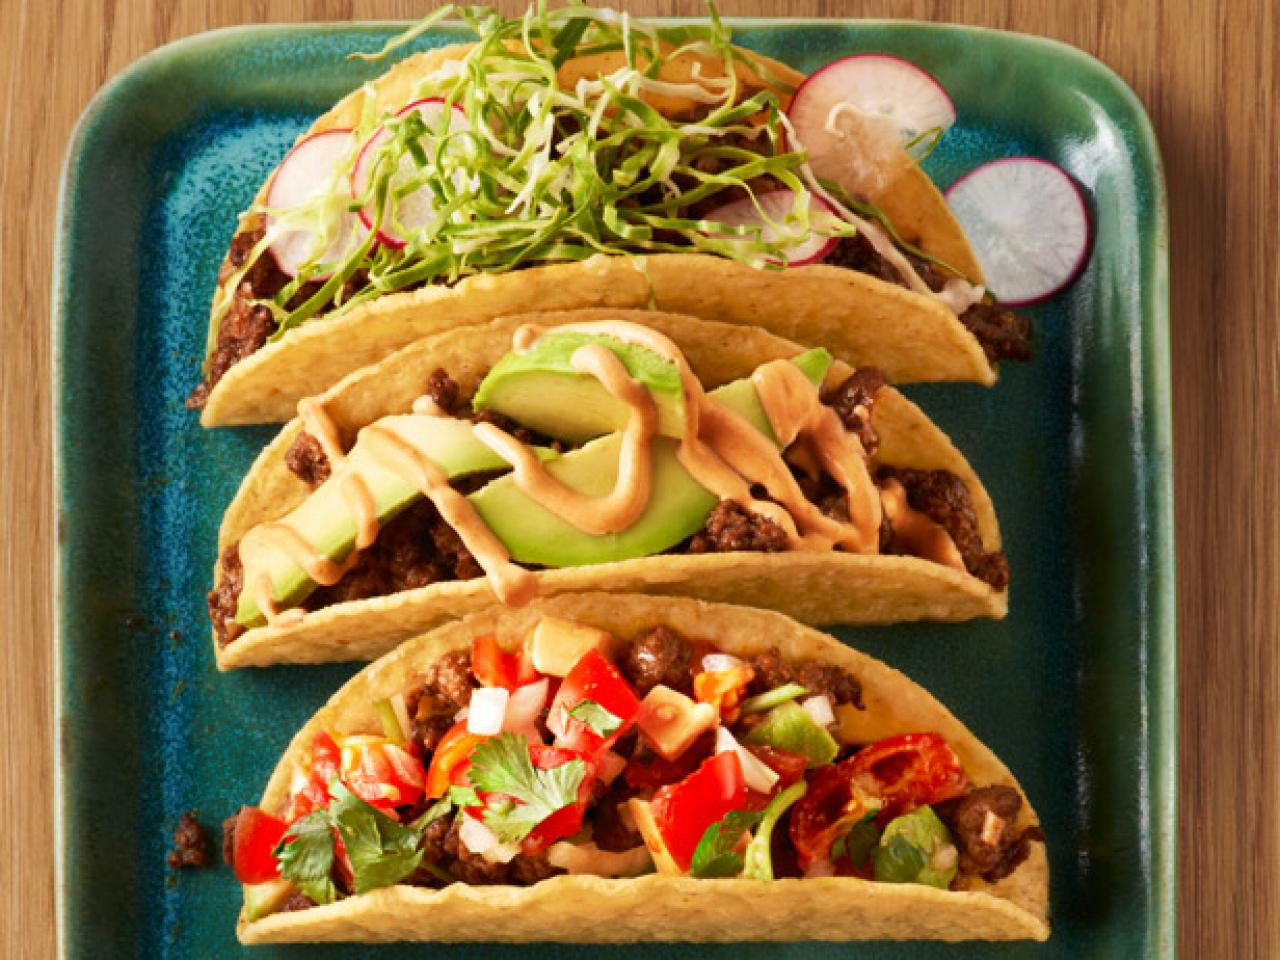 Make it 5 ways tacos recipes and cooking food network recipes 50 taco recipes for dinner tonight forumfinder Choice Image